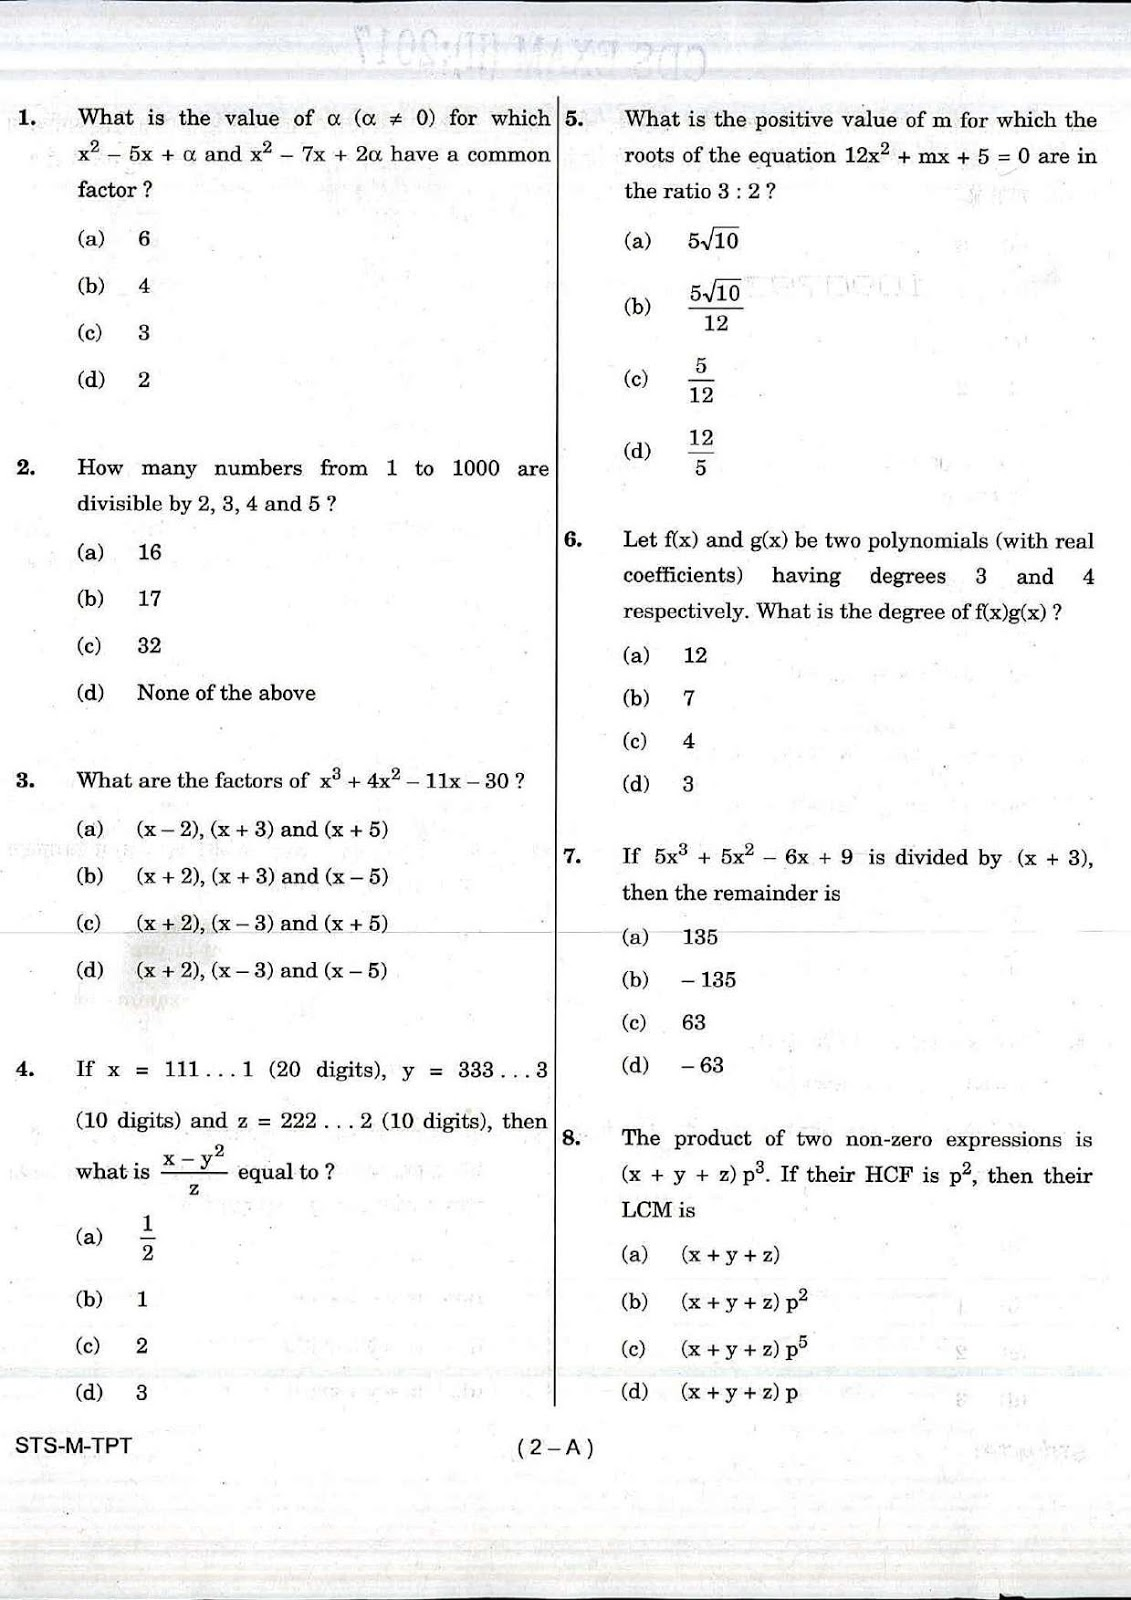 UPSC CDS II 2017 Mathematics question paper